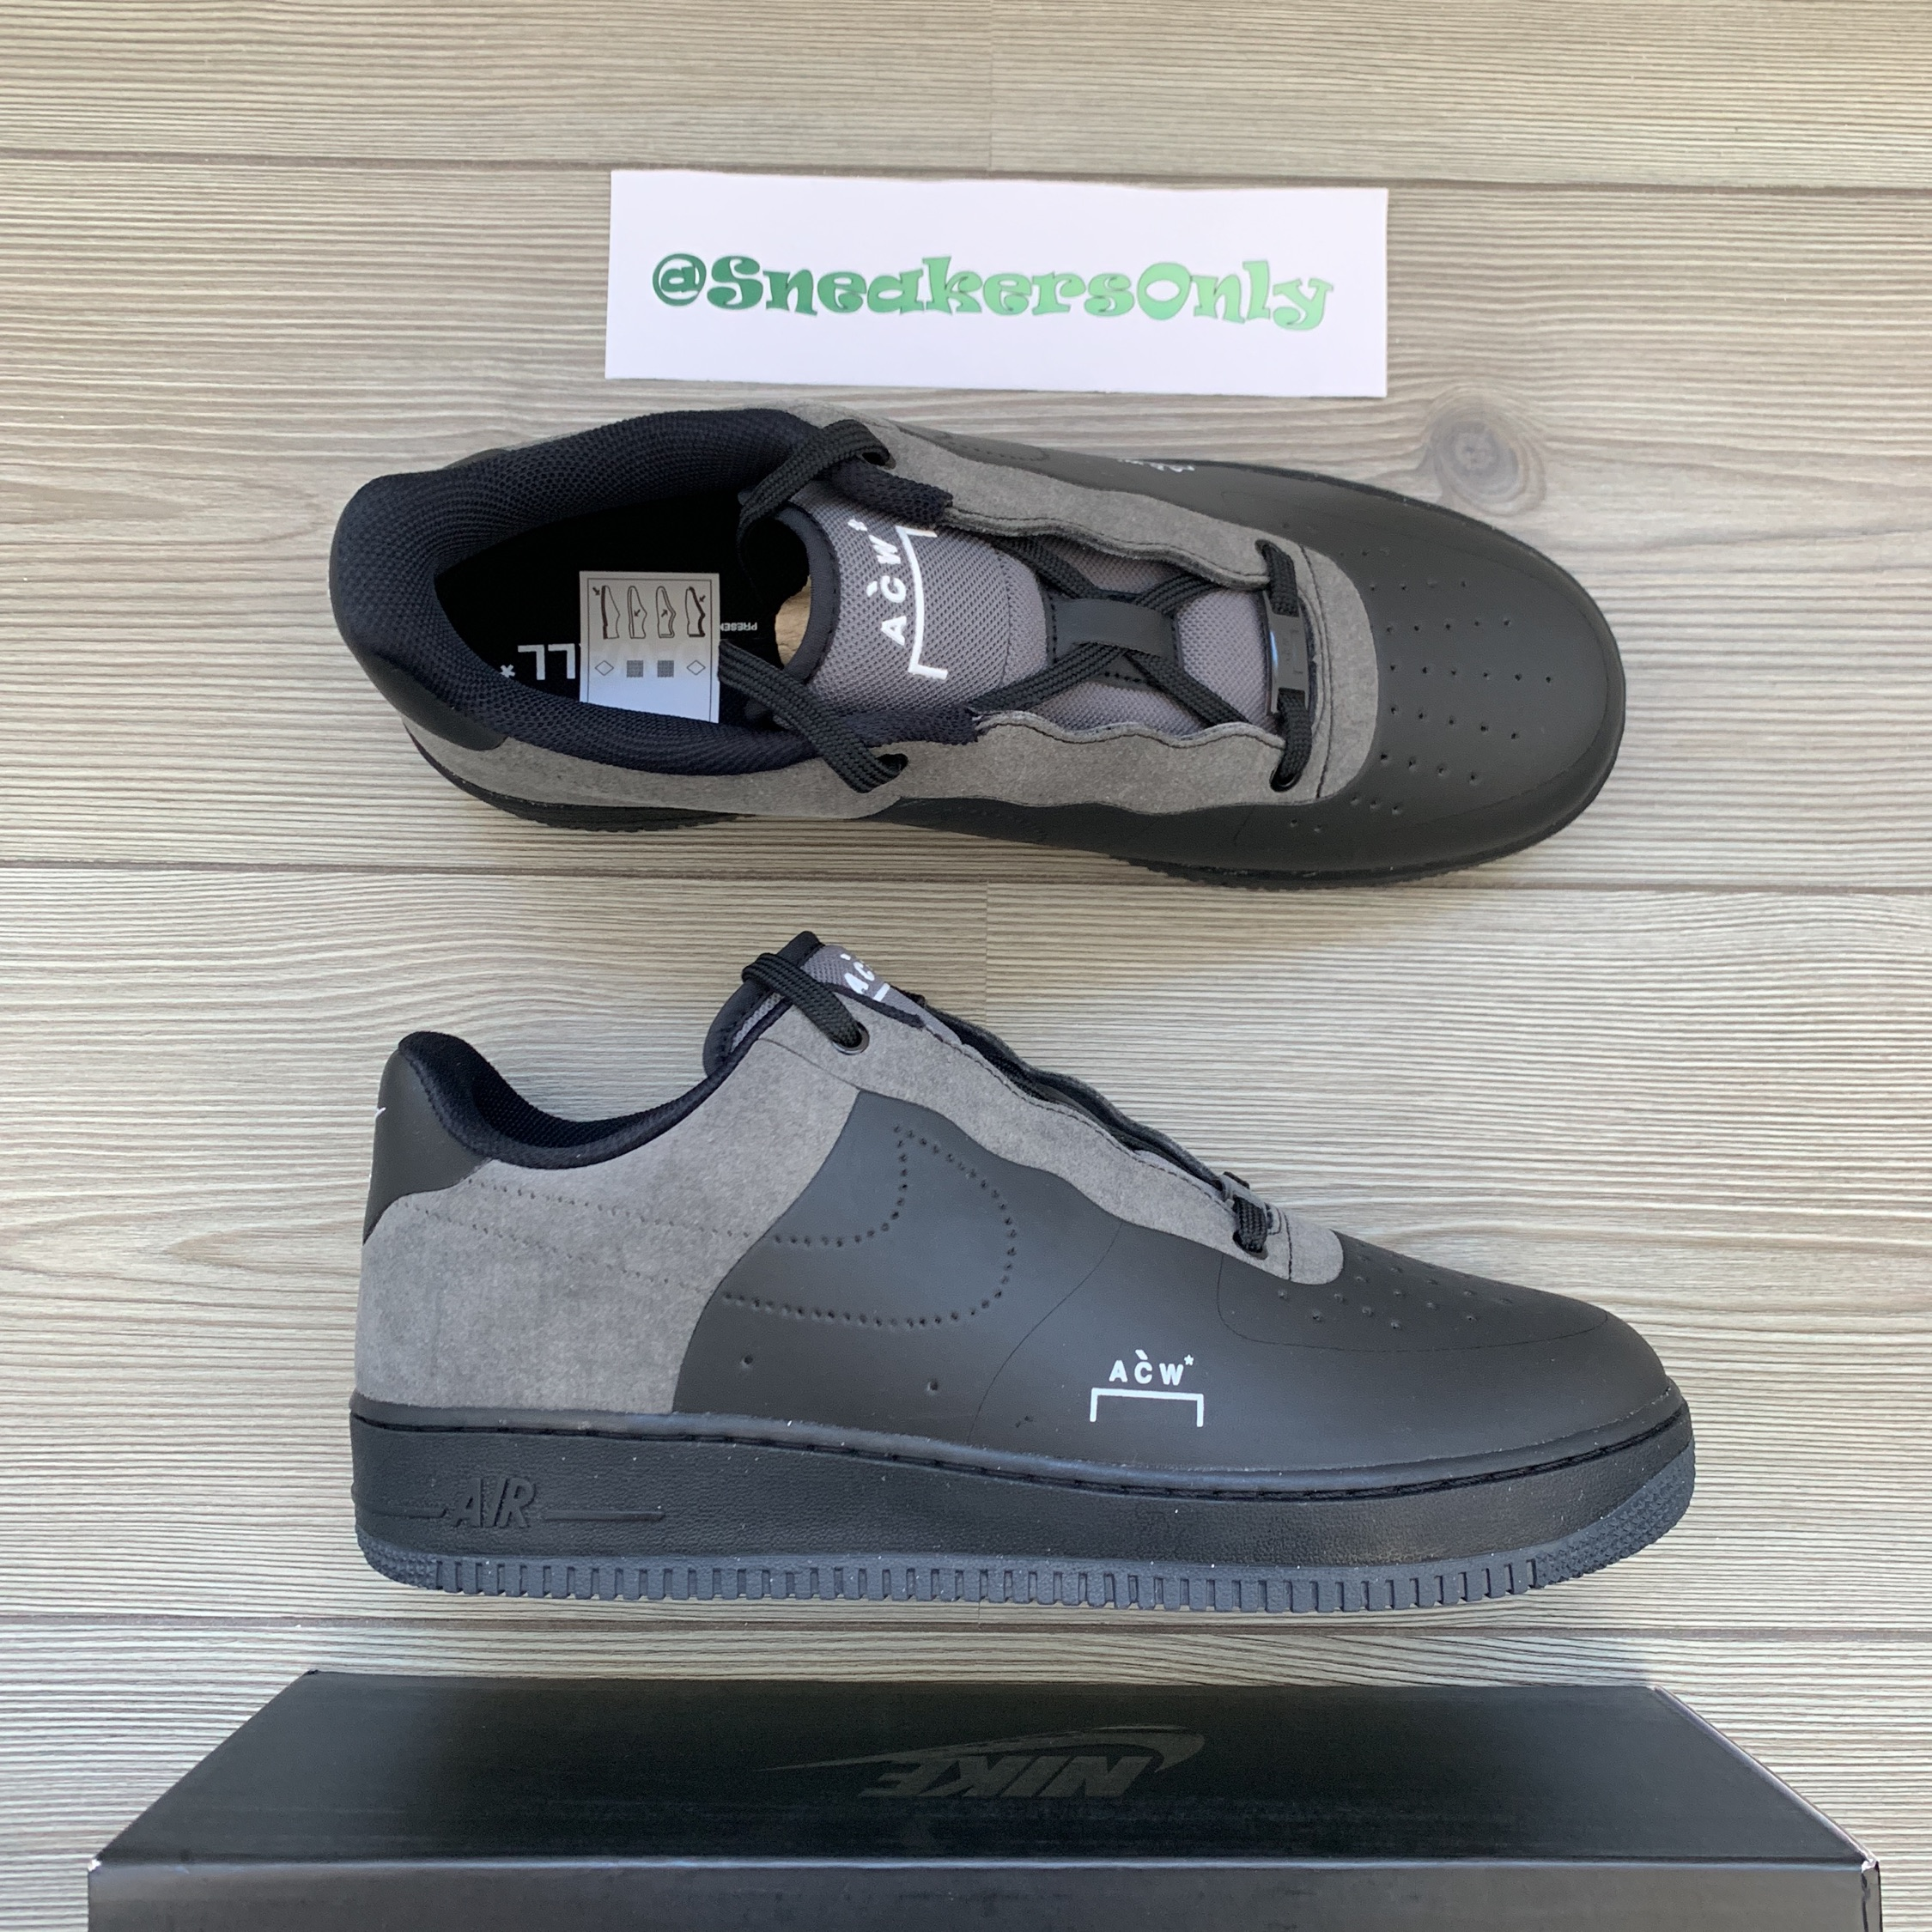 new style 245d4 37f6e 3bf89ddeb8c450ea9ff2babe0f40b51e listingImg2 dGl9BipY7Z.jpg. The Nike Air  Force 1  07 LV8 Utility Low in Olive and Black drops 1